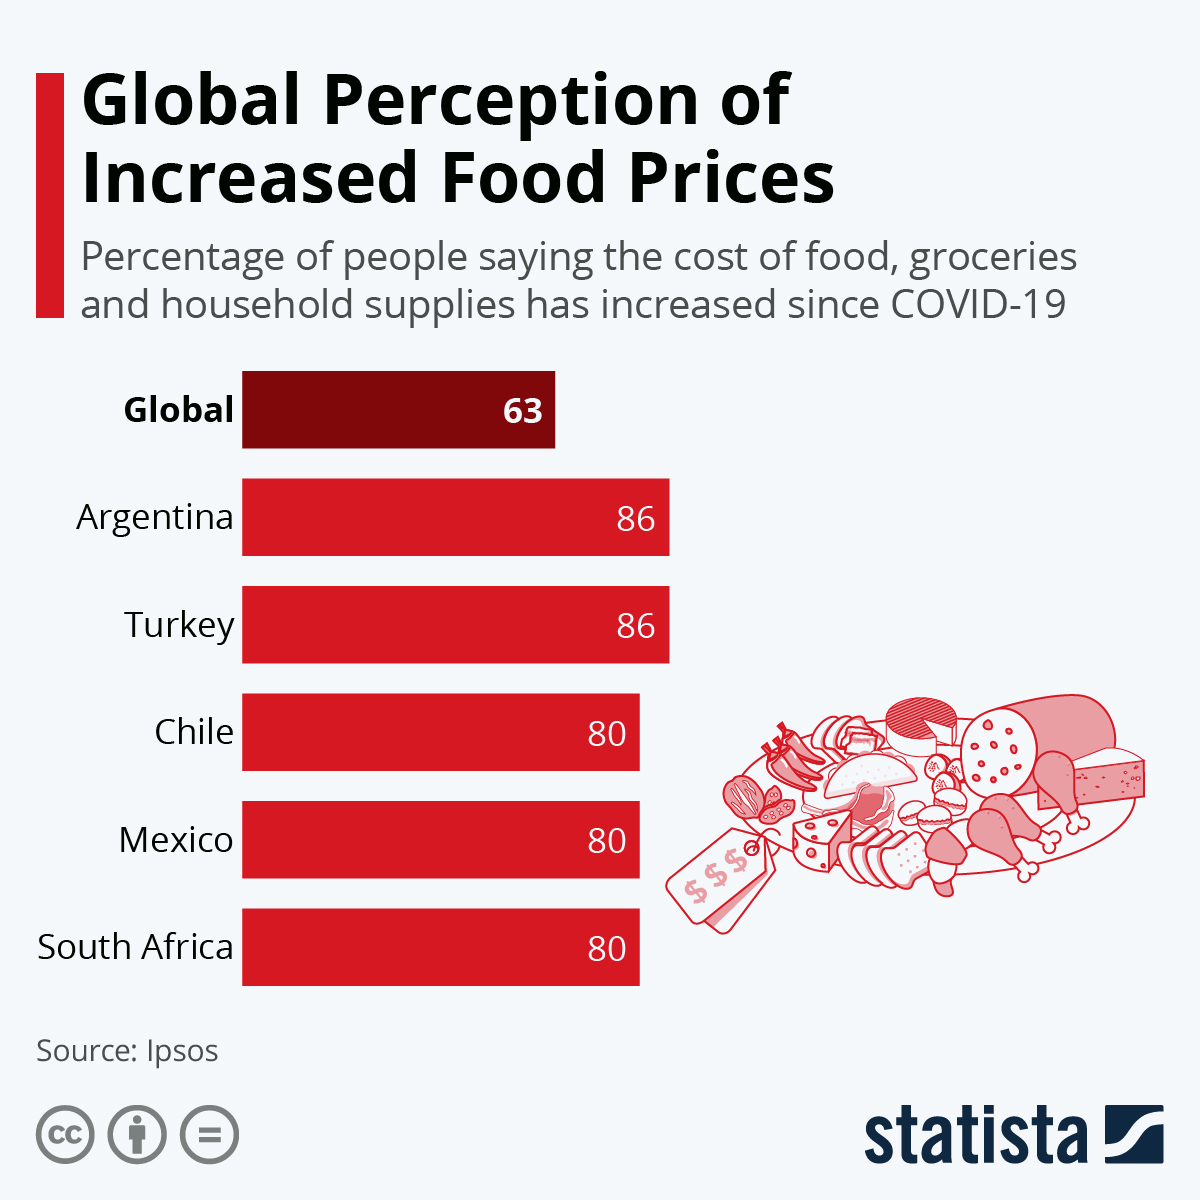 Global Perception of Increased Food Prices #infographic